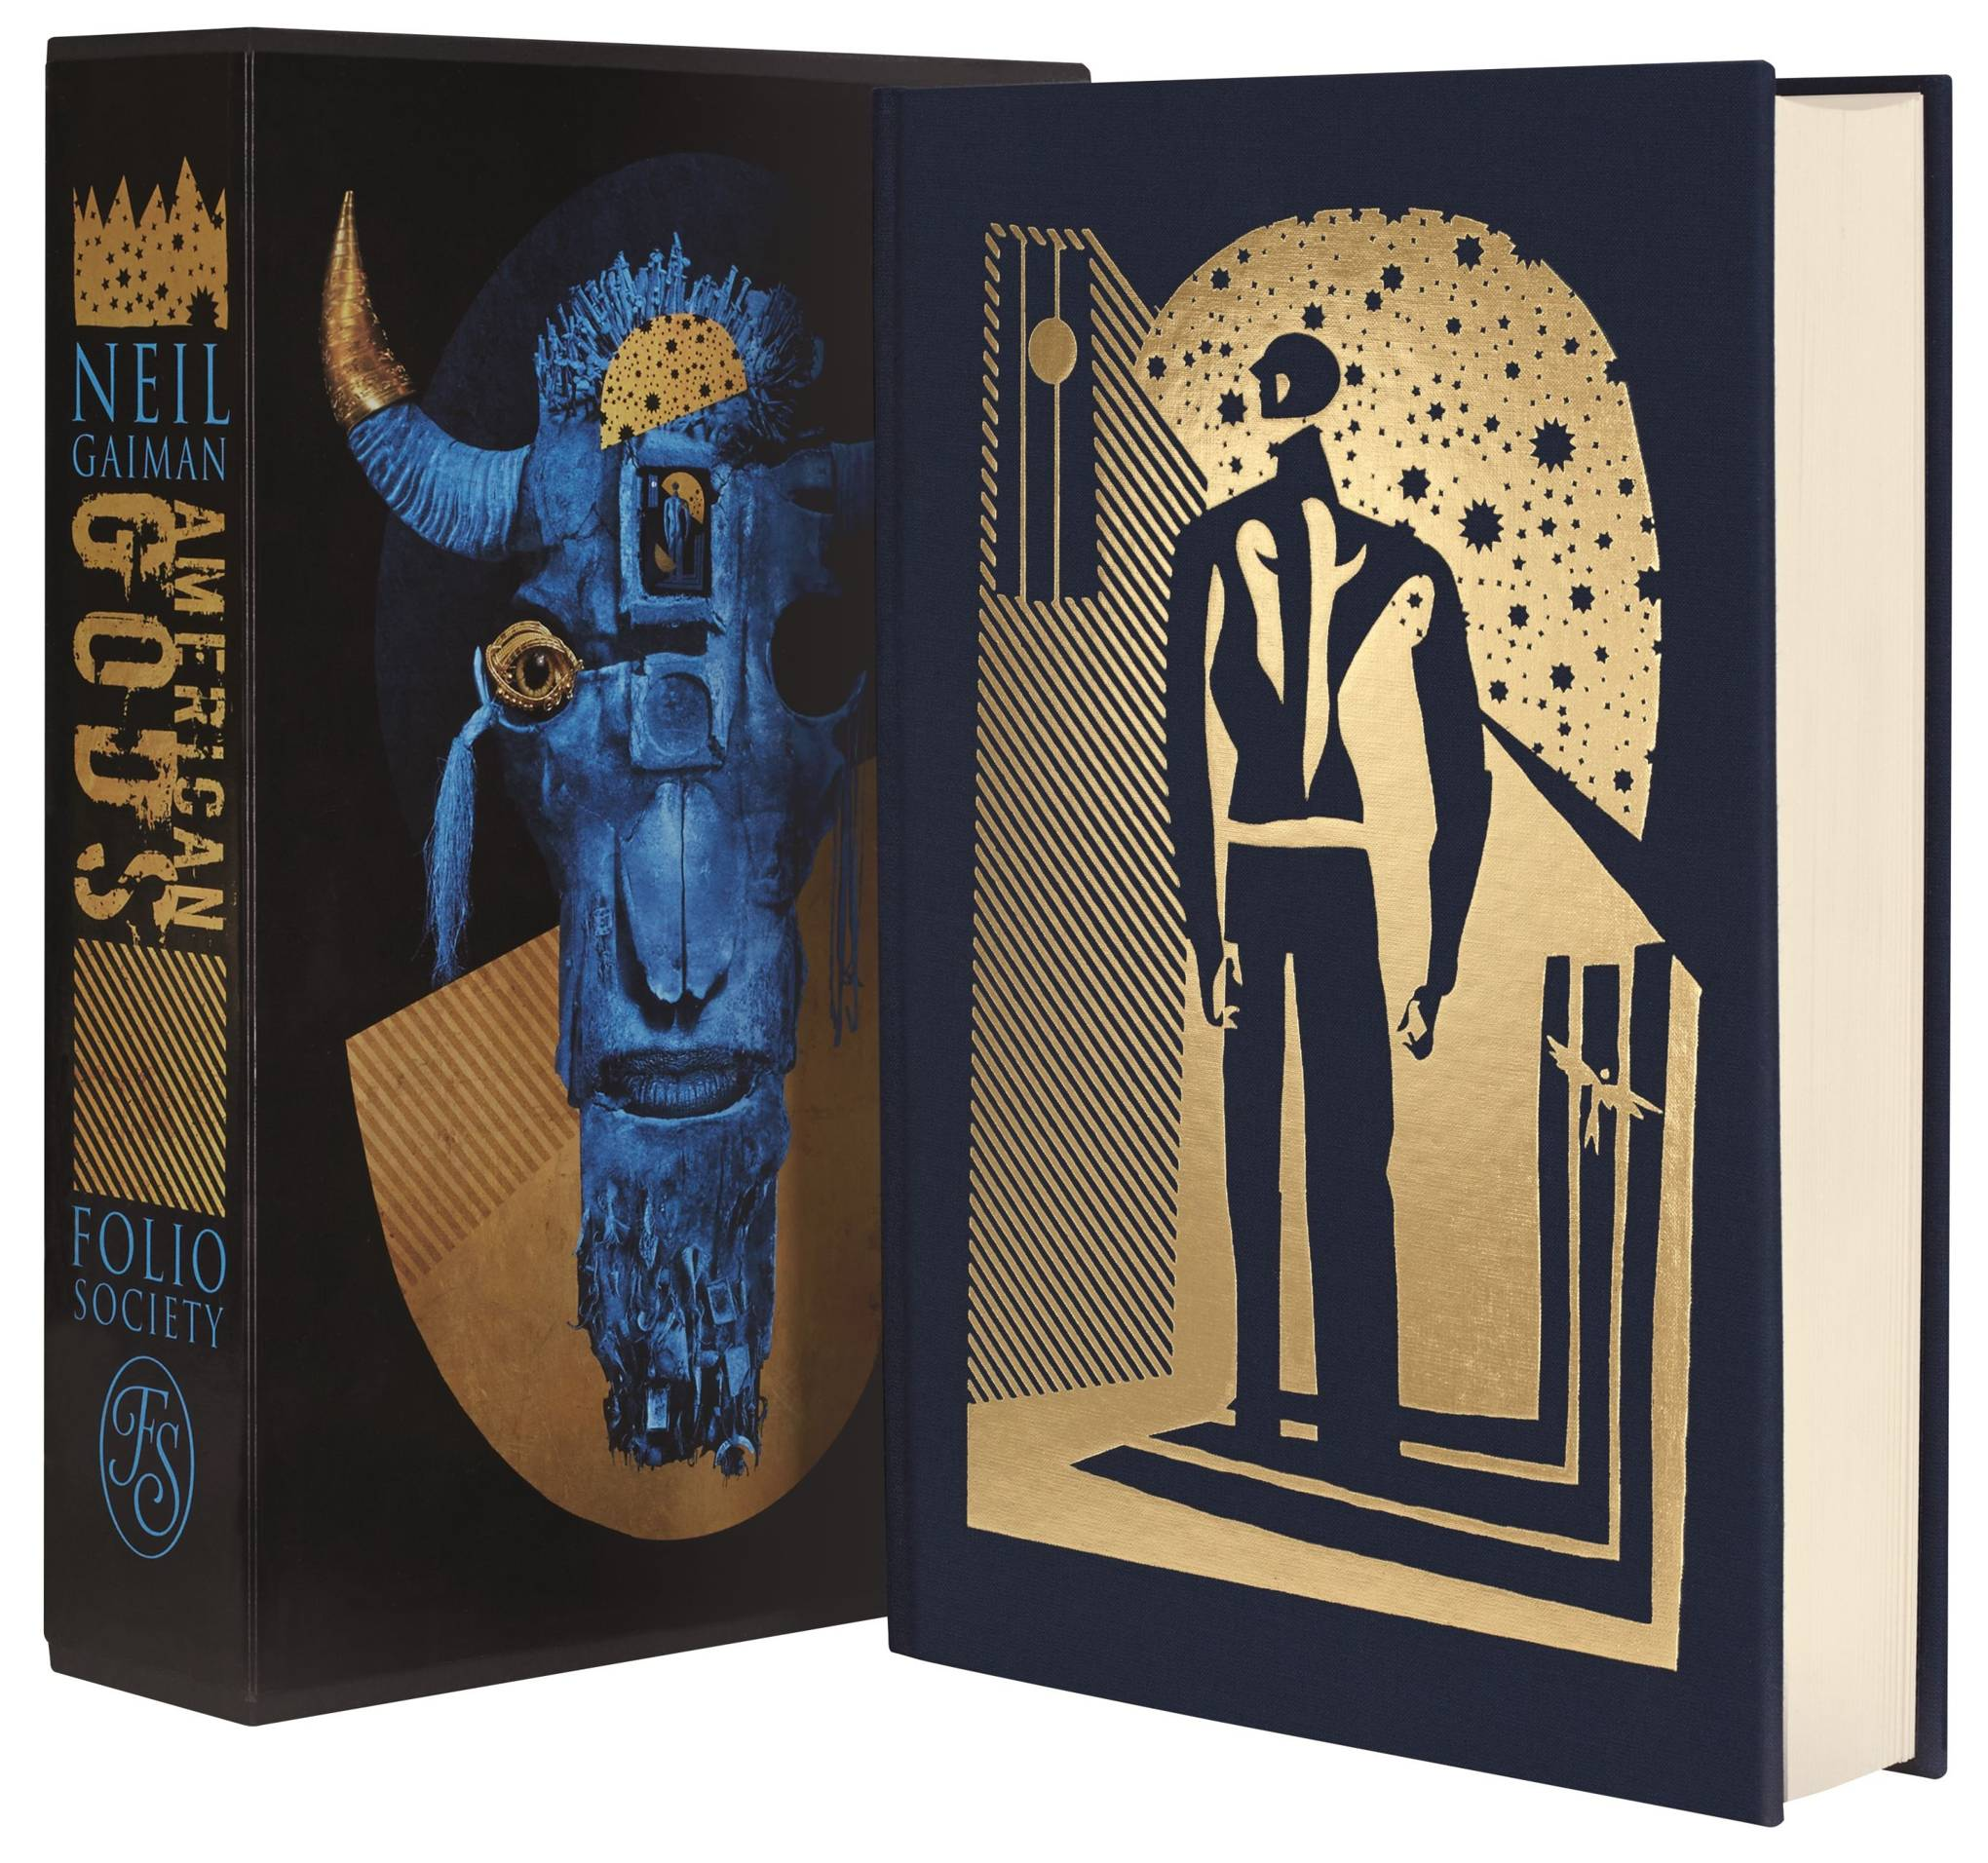 Neil Gaiman partners with Dave McKean for new American Gods